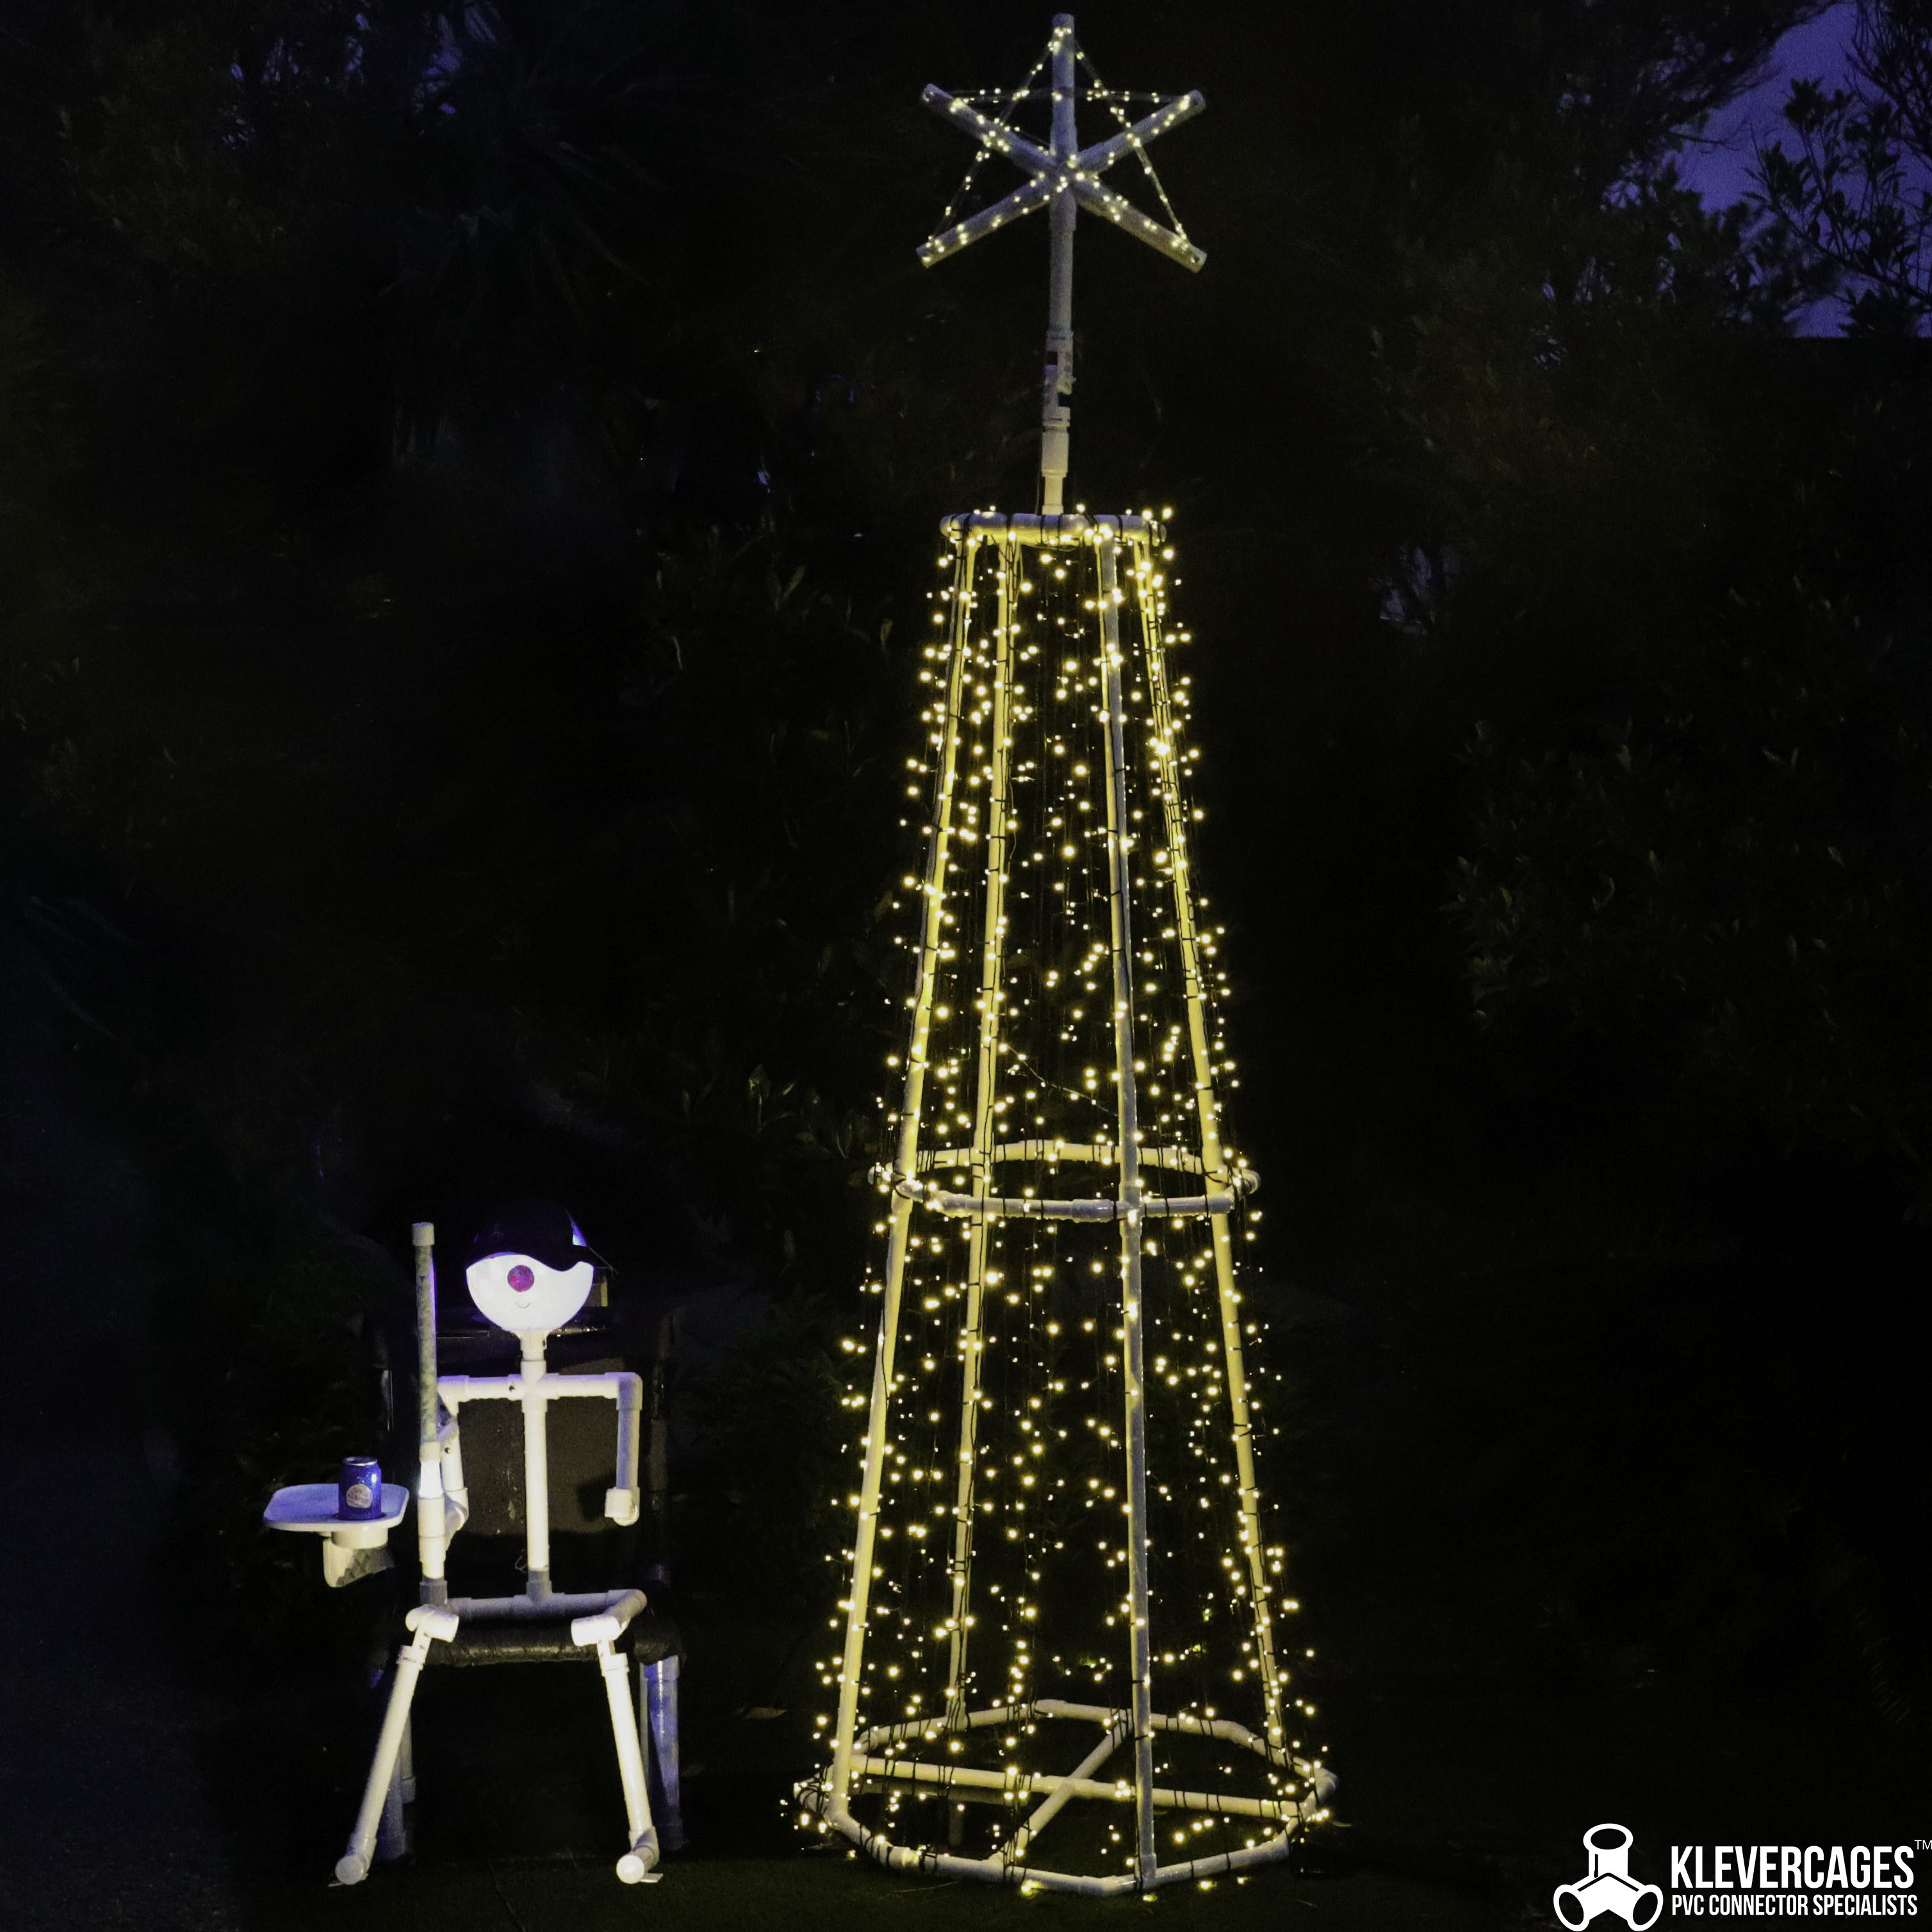 Connector Cam PVC pipe person sitting on a chair in the dark guarding a christmas tree. Cam is built from 25mm connectors and PBVC pipe from Klever Cages